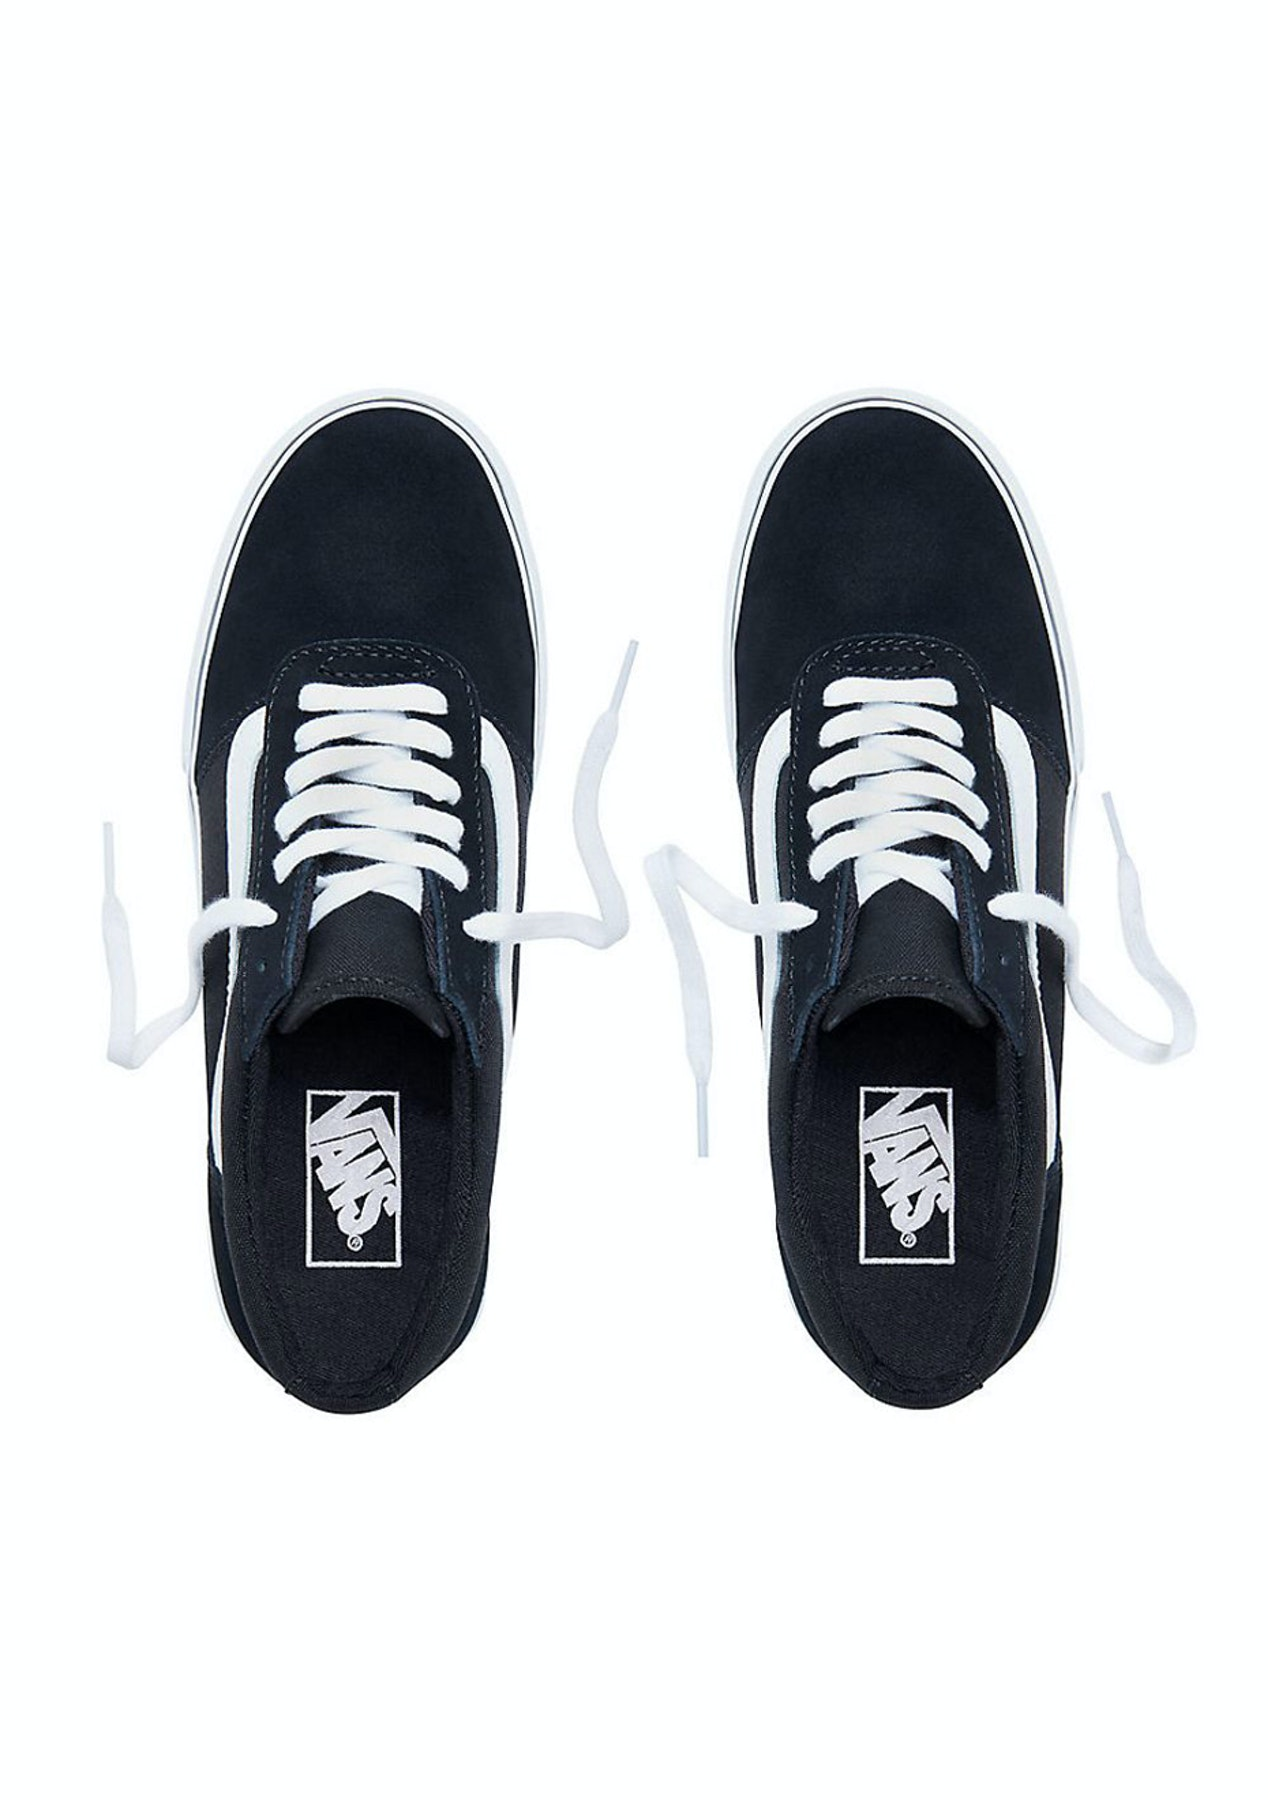 b687d0c9c317b9 Vans - Womens Maddie - Canvas - Black White - Vans for The Family - Onceit